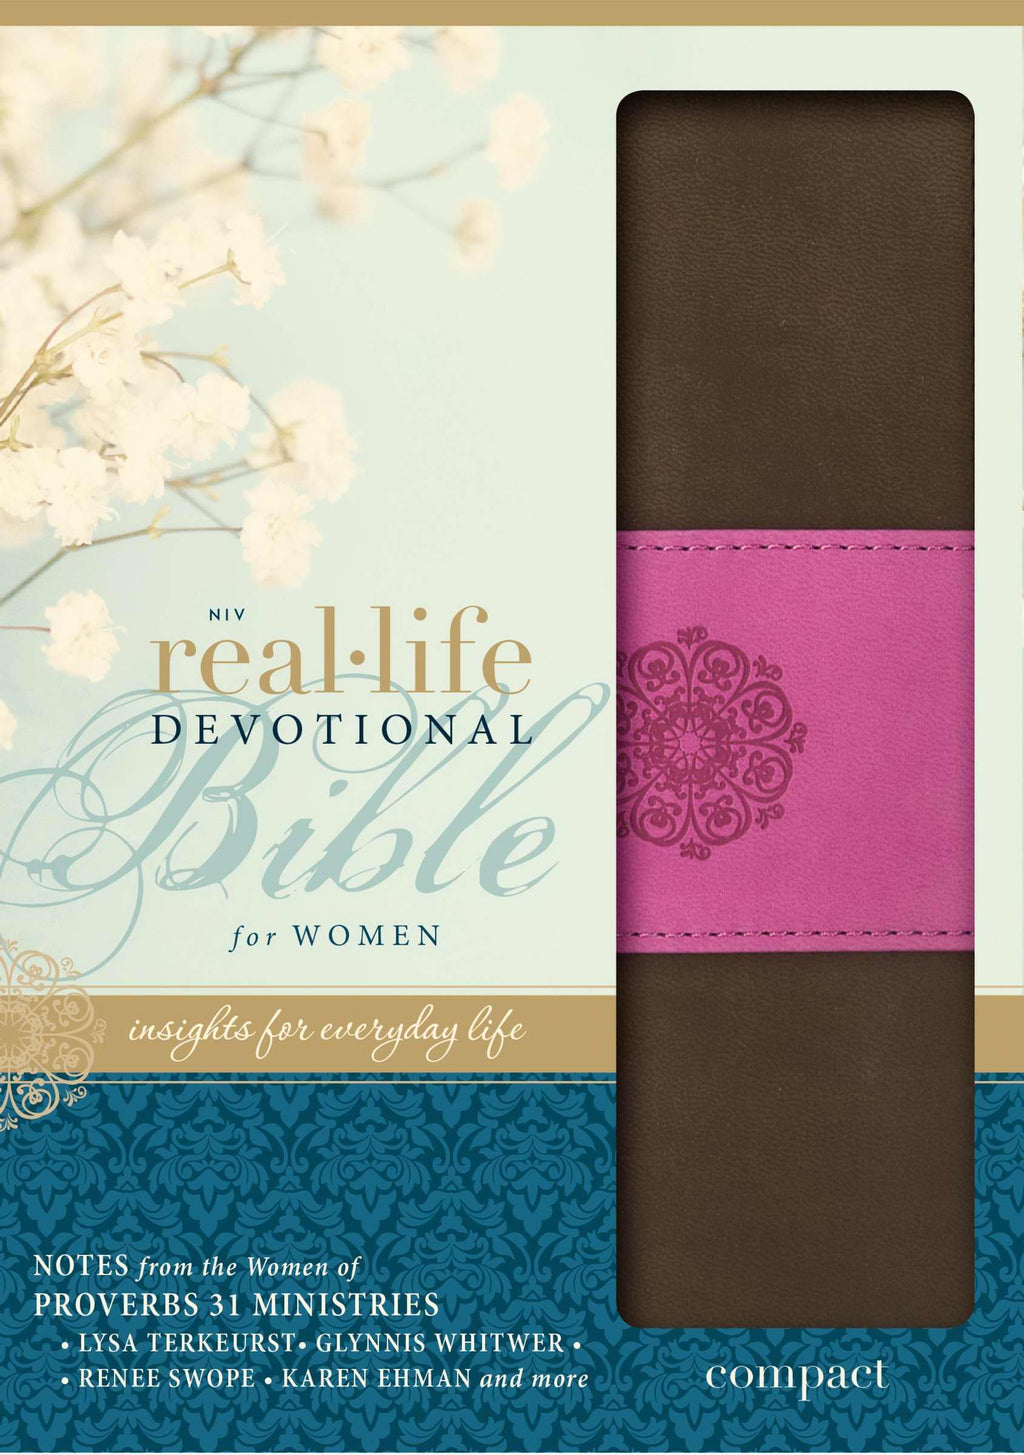 NIV Real-Life Devotional Bible For Women-Compact-Chocolate-Orchid Duo-Tone